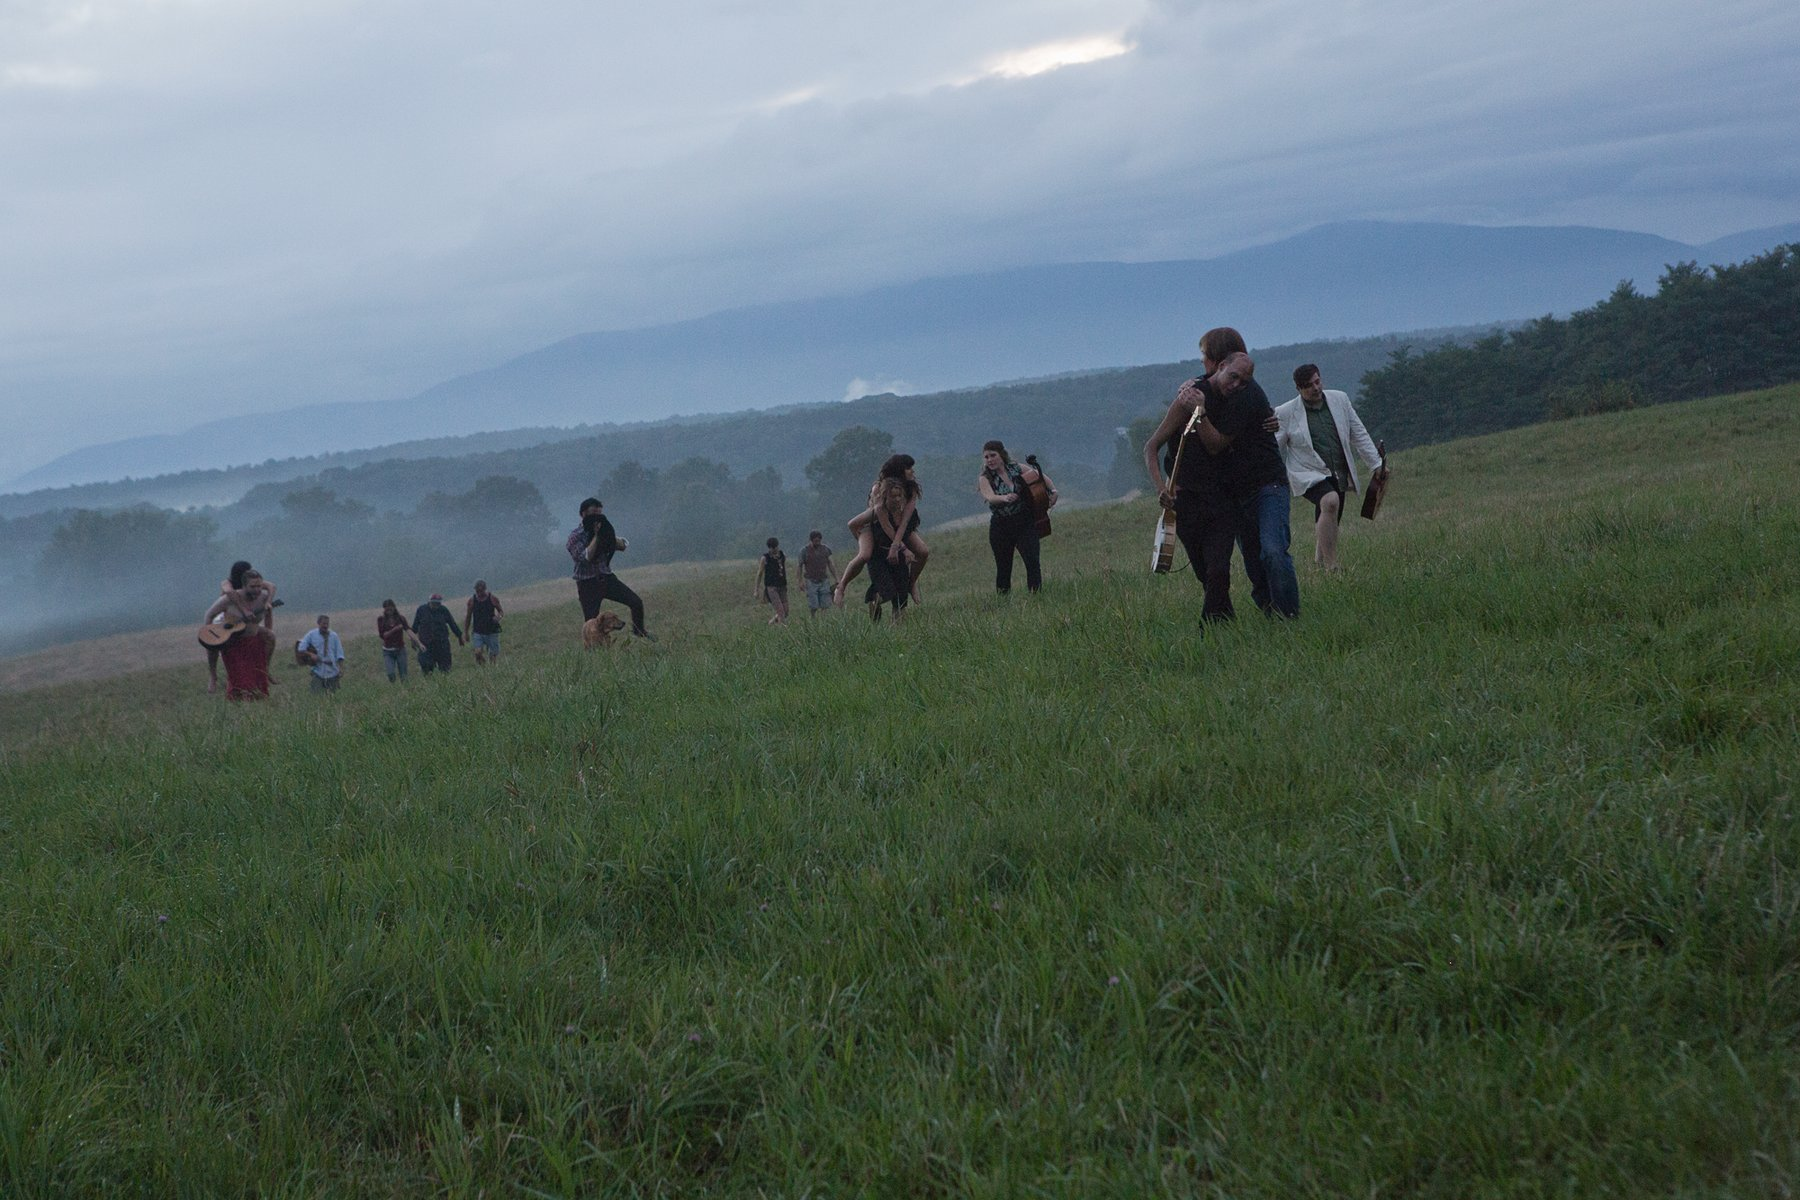 Several people stand in an open green field at dusk, Kjartansson